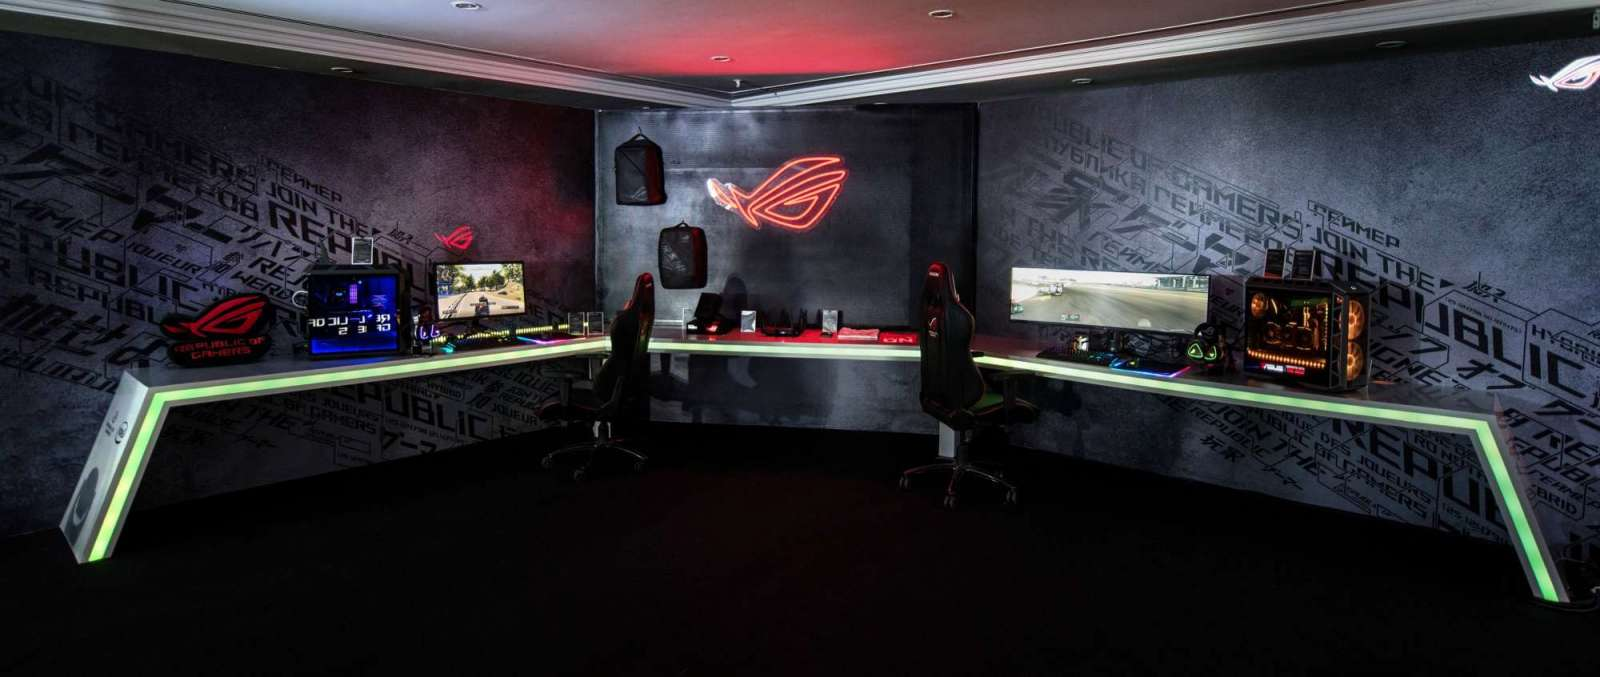 Complete lineup of ROG gear is displayed in demo area of Incredible Intelligence 2018 press event in Malaysia